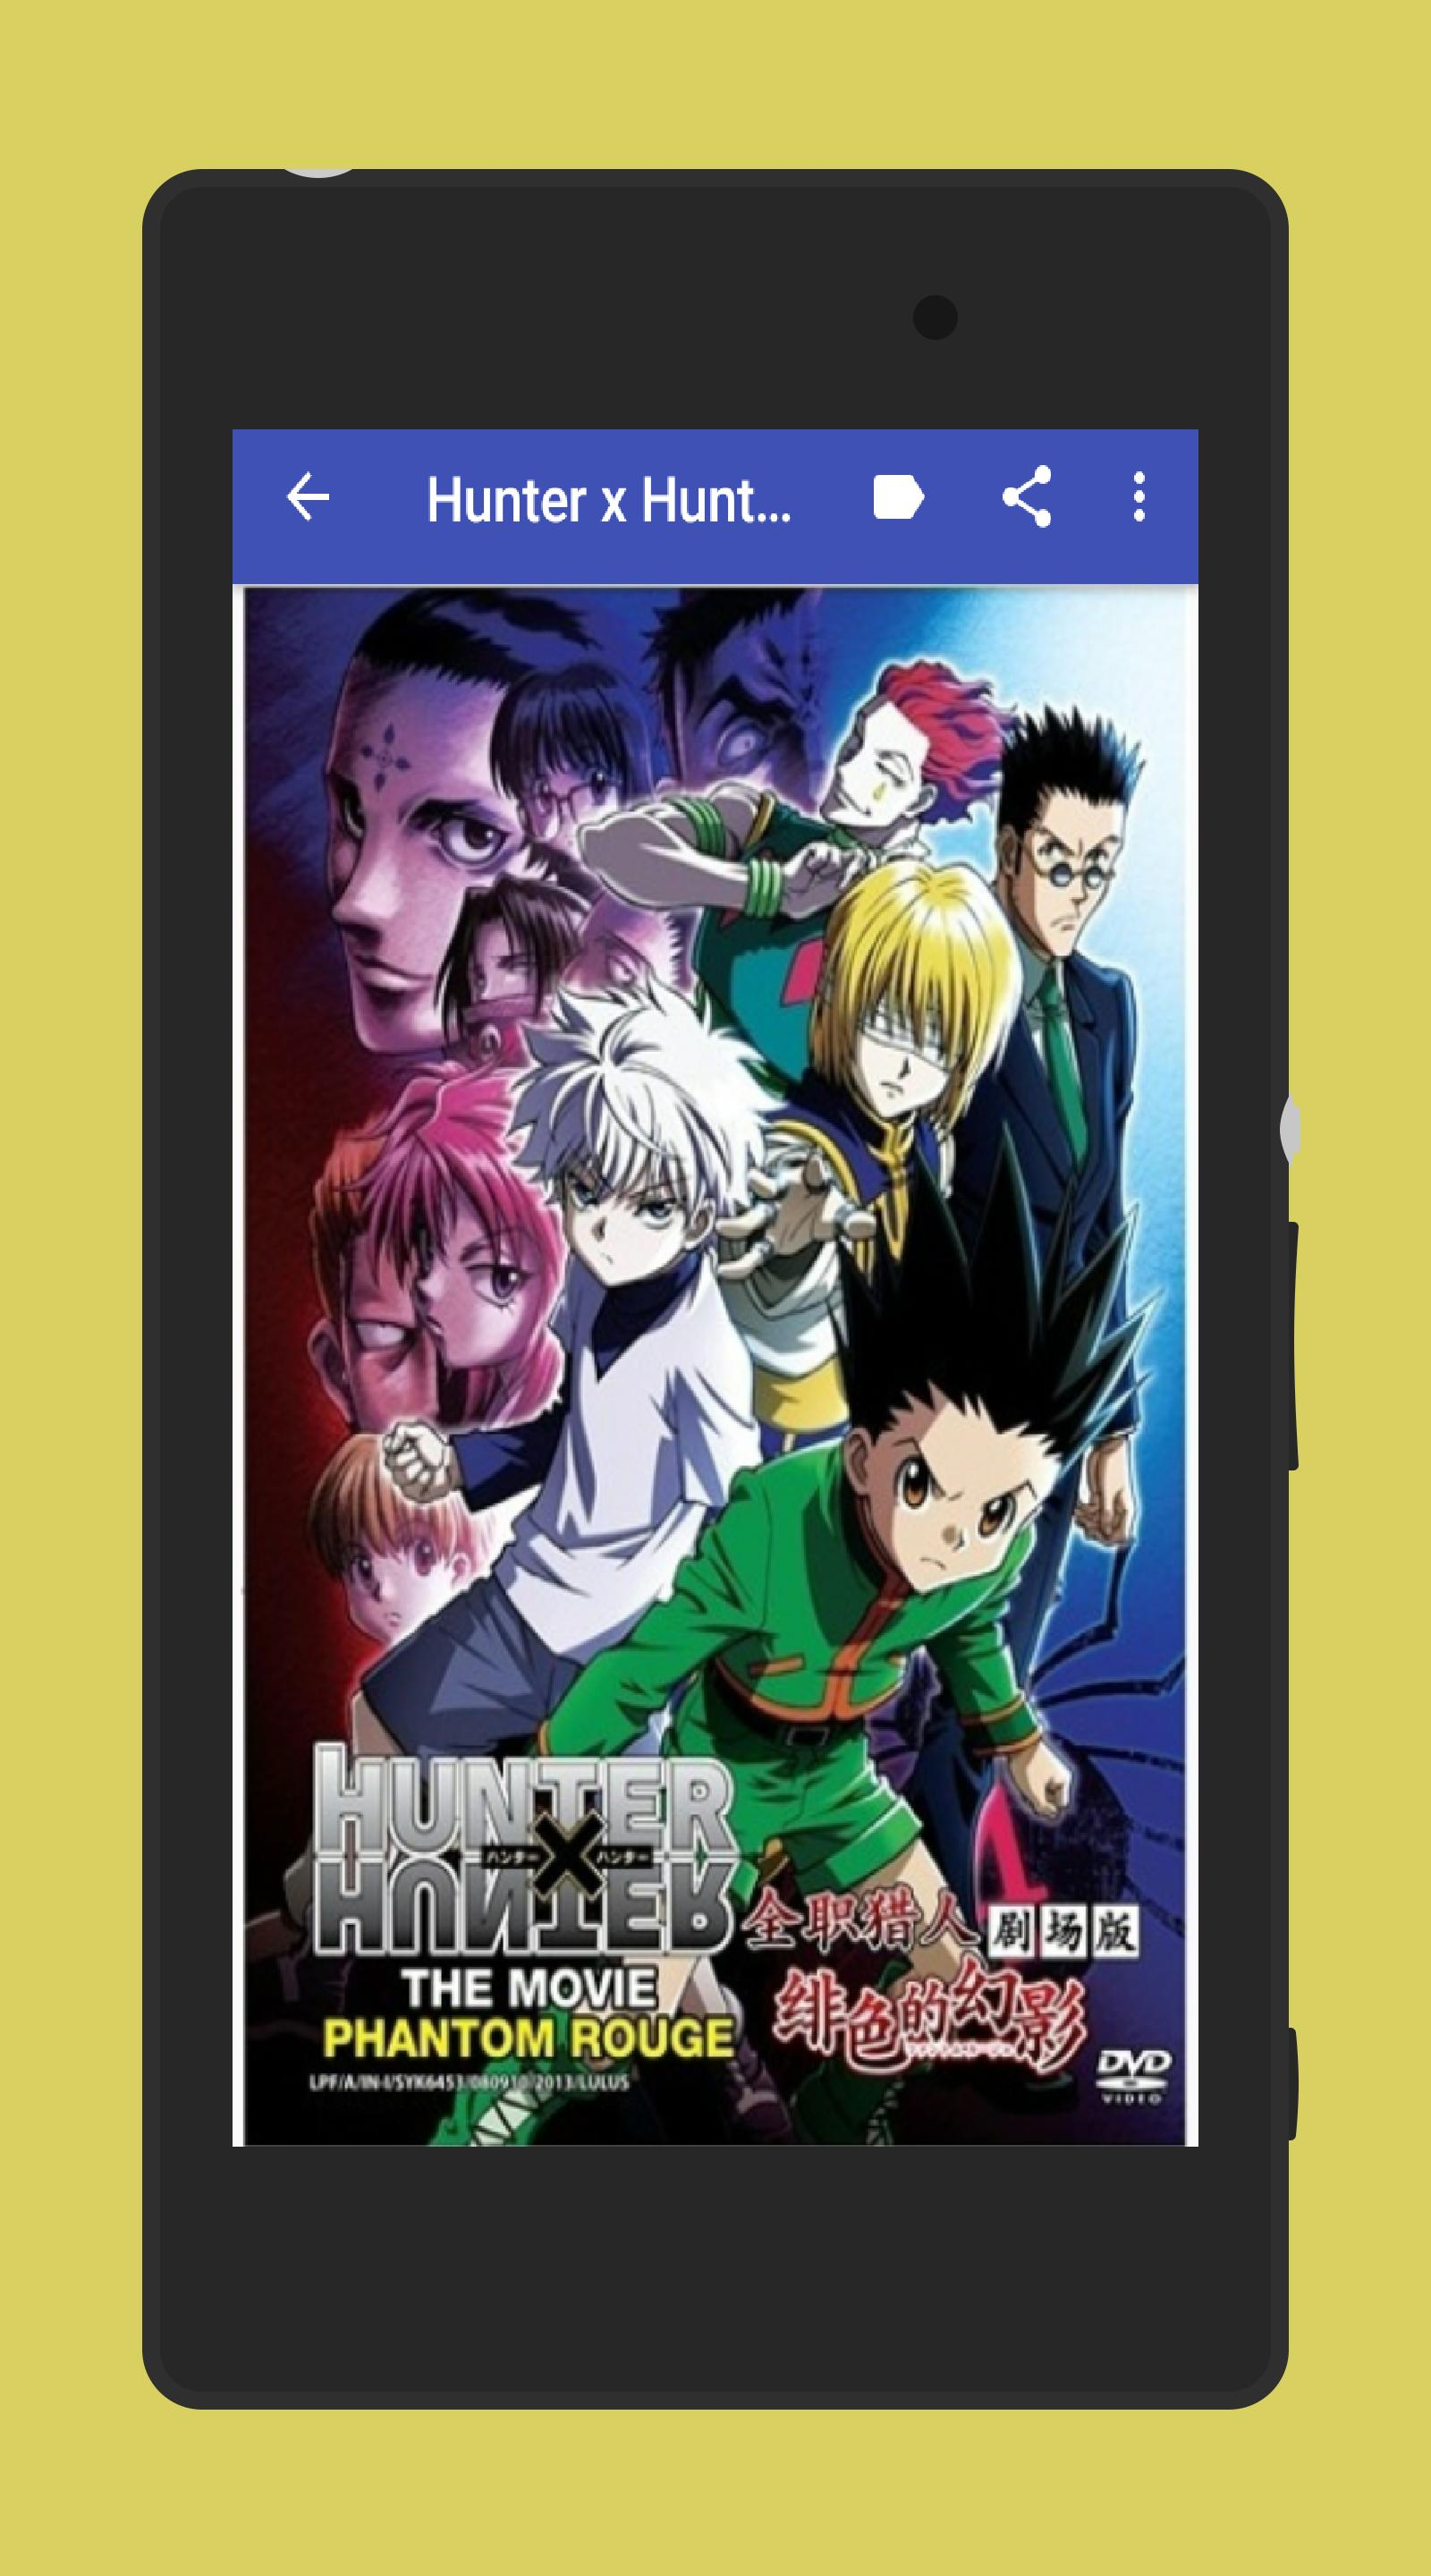 Hunter X Hunter Wallpaper For Android Apk Download